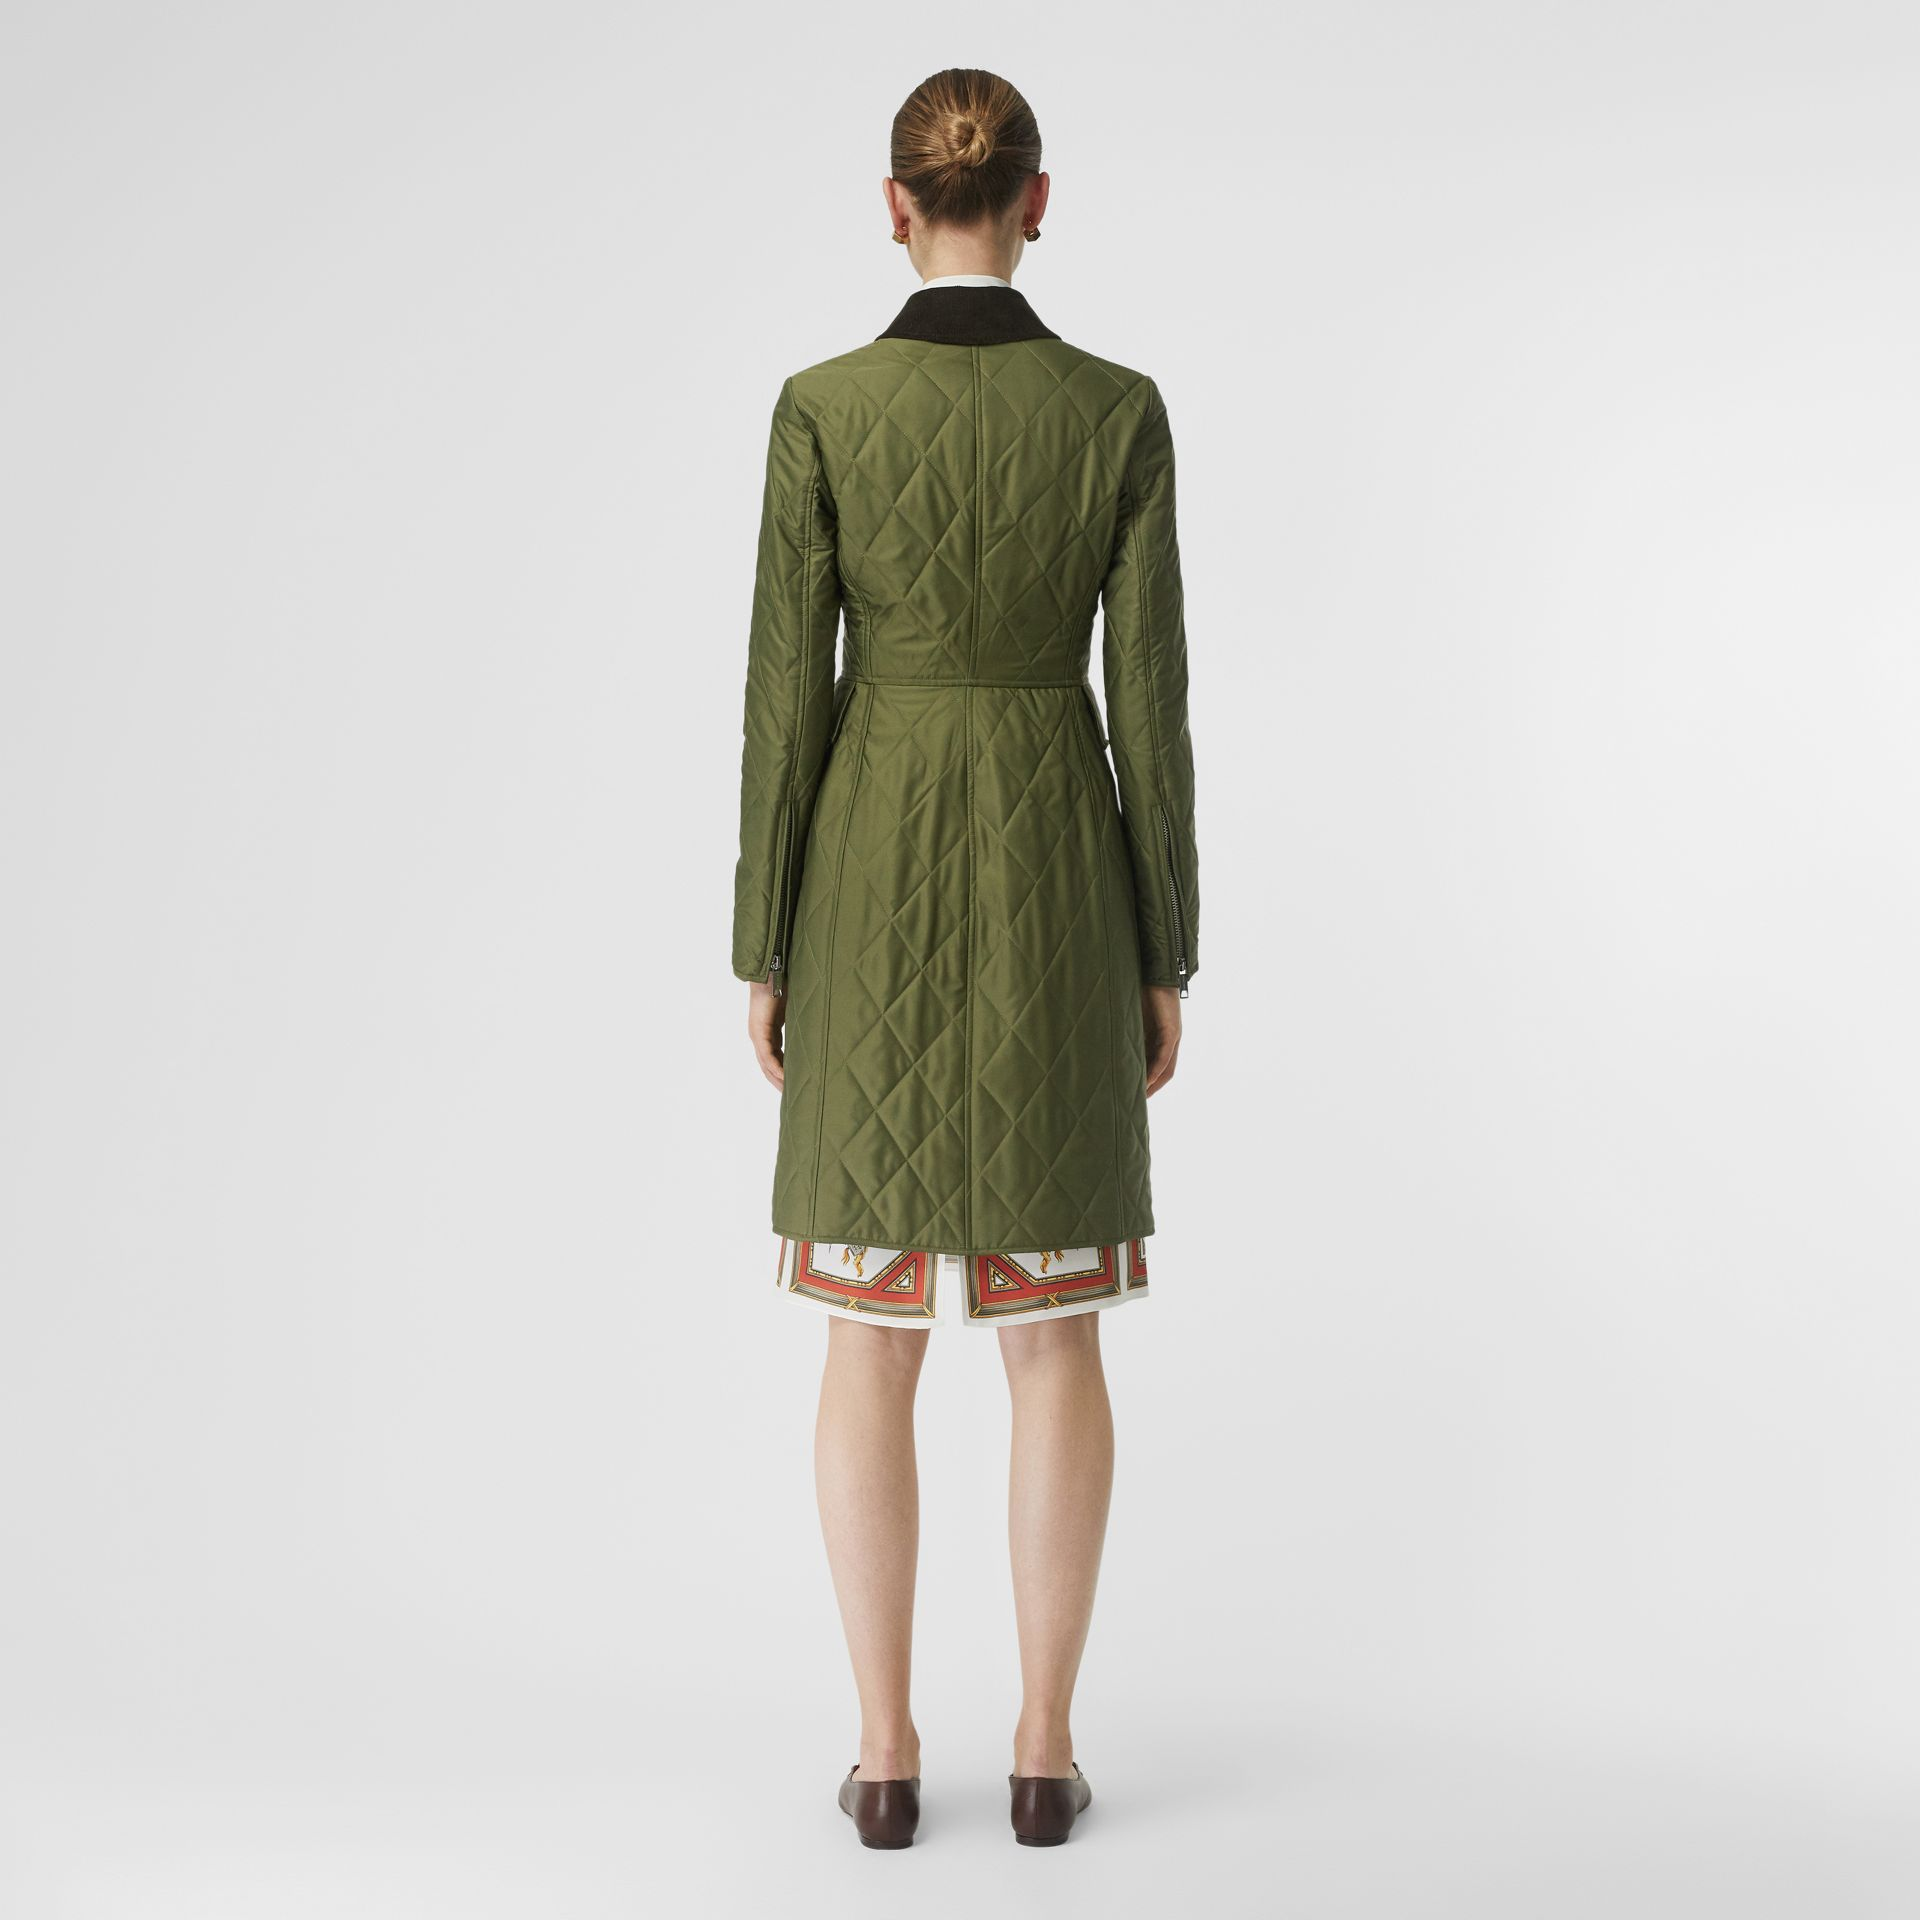 Monogram Motif Quilted Riding Coat in Utility Green - Women | Burberry - gallery image 3